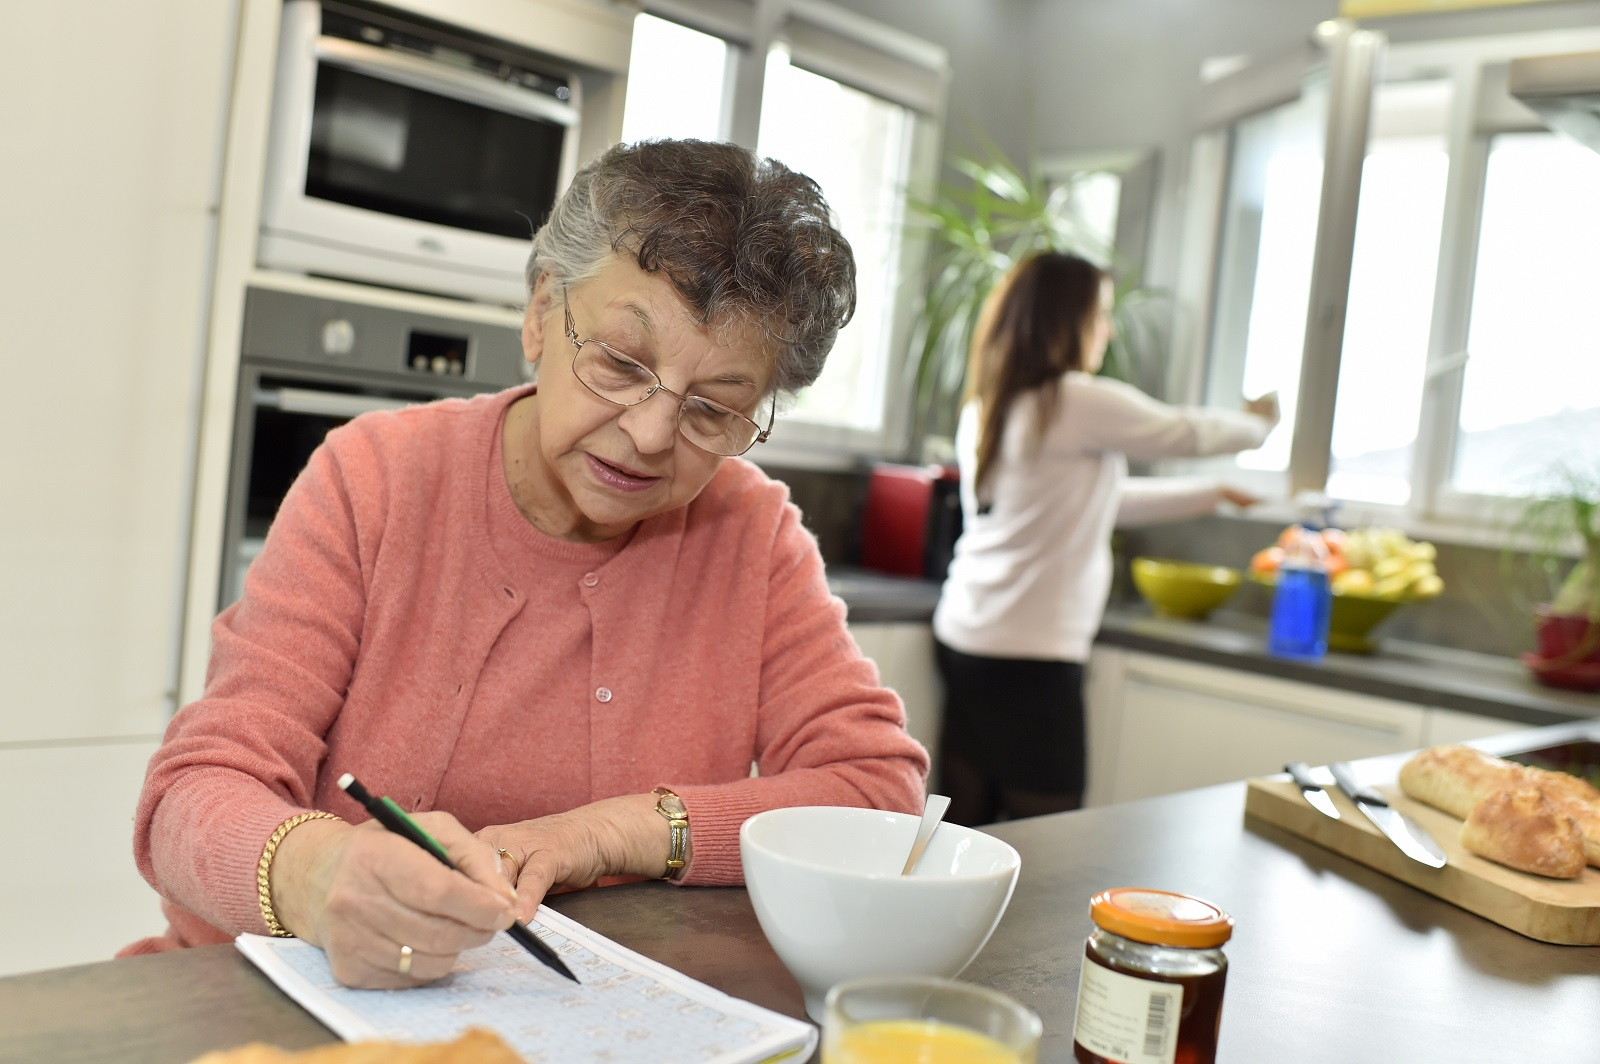 Why Elderly Ones Need a Daily Routine